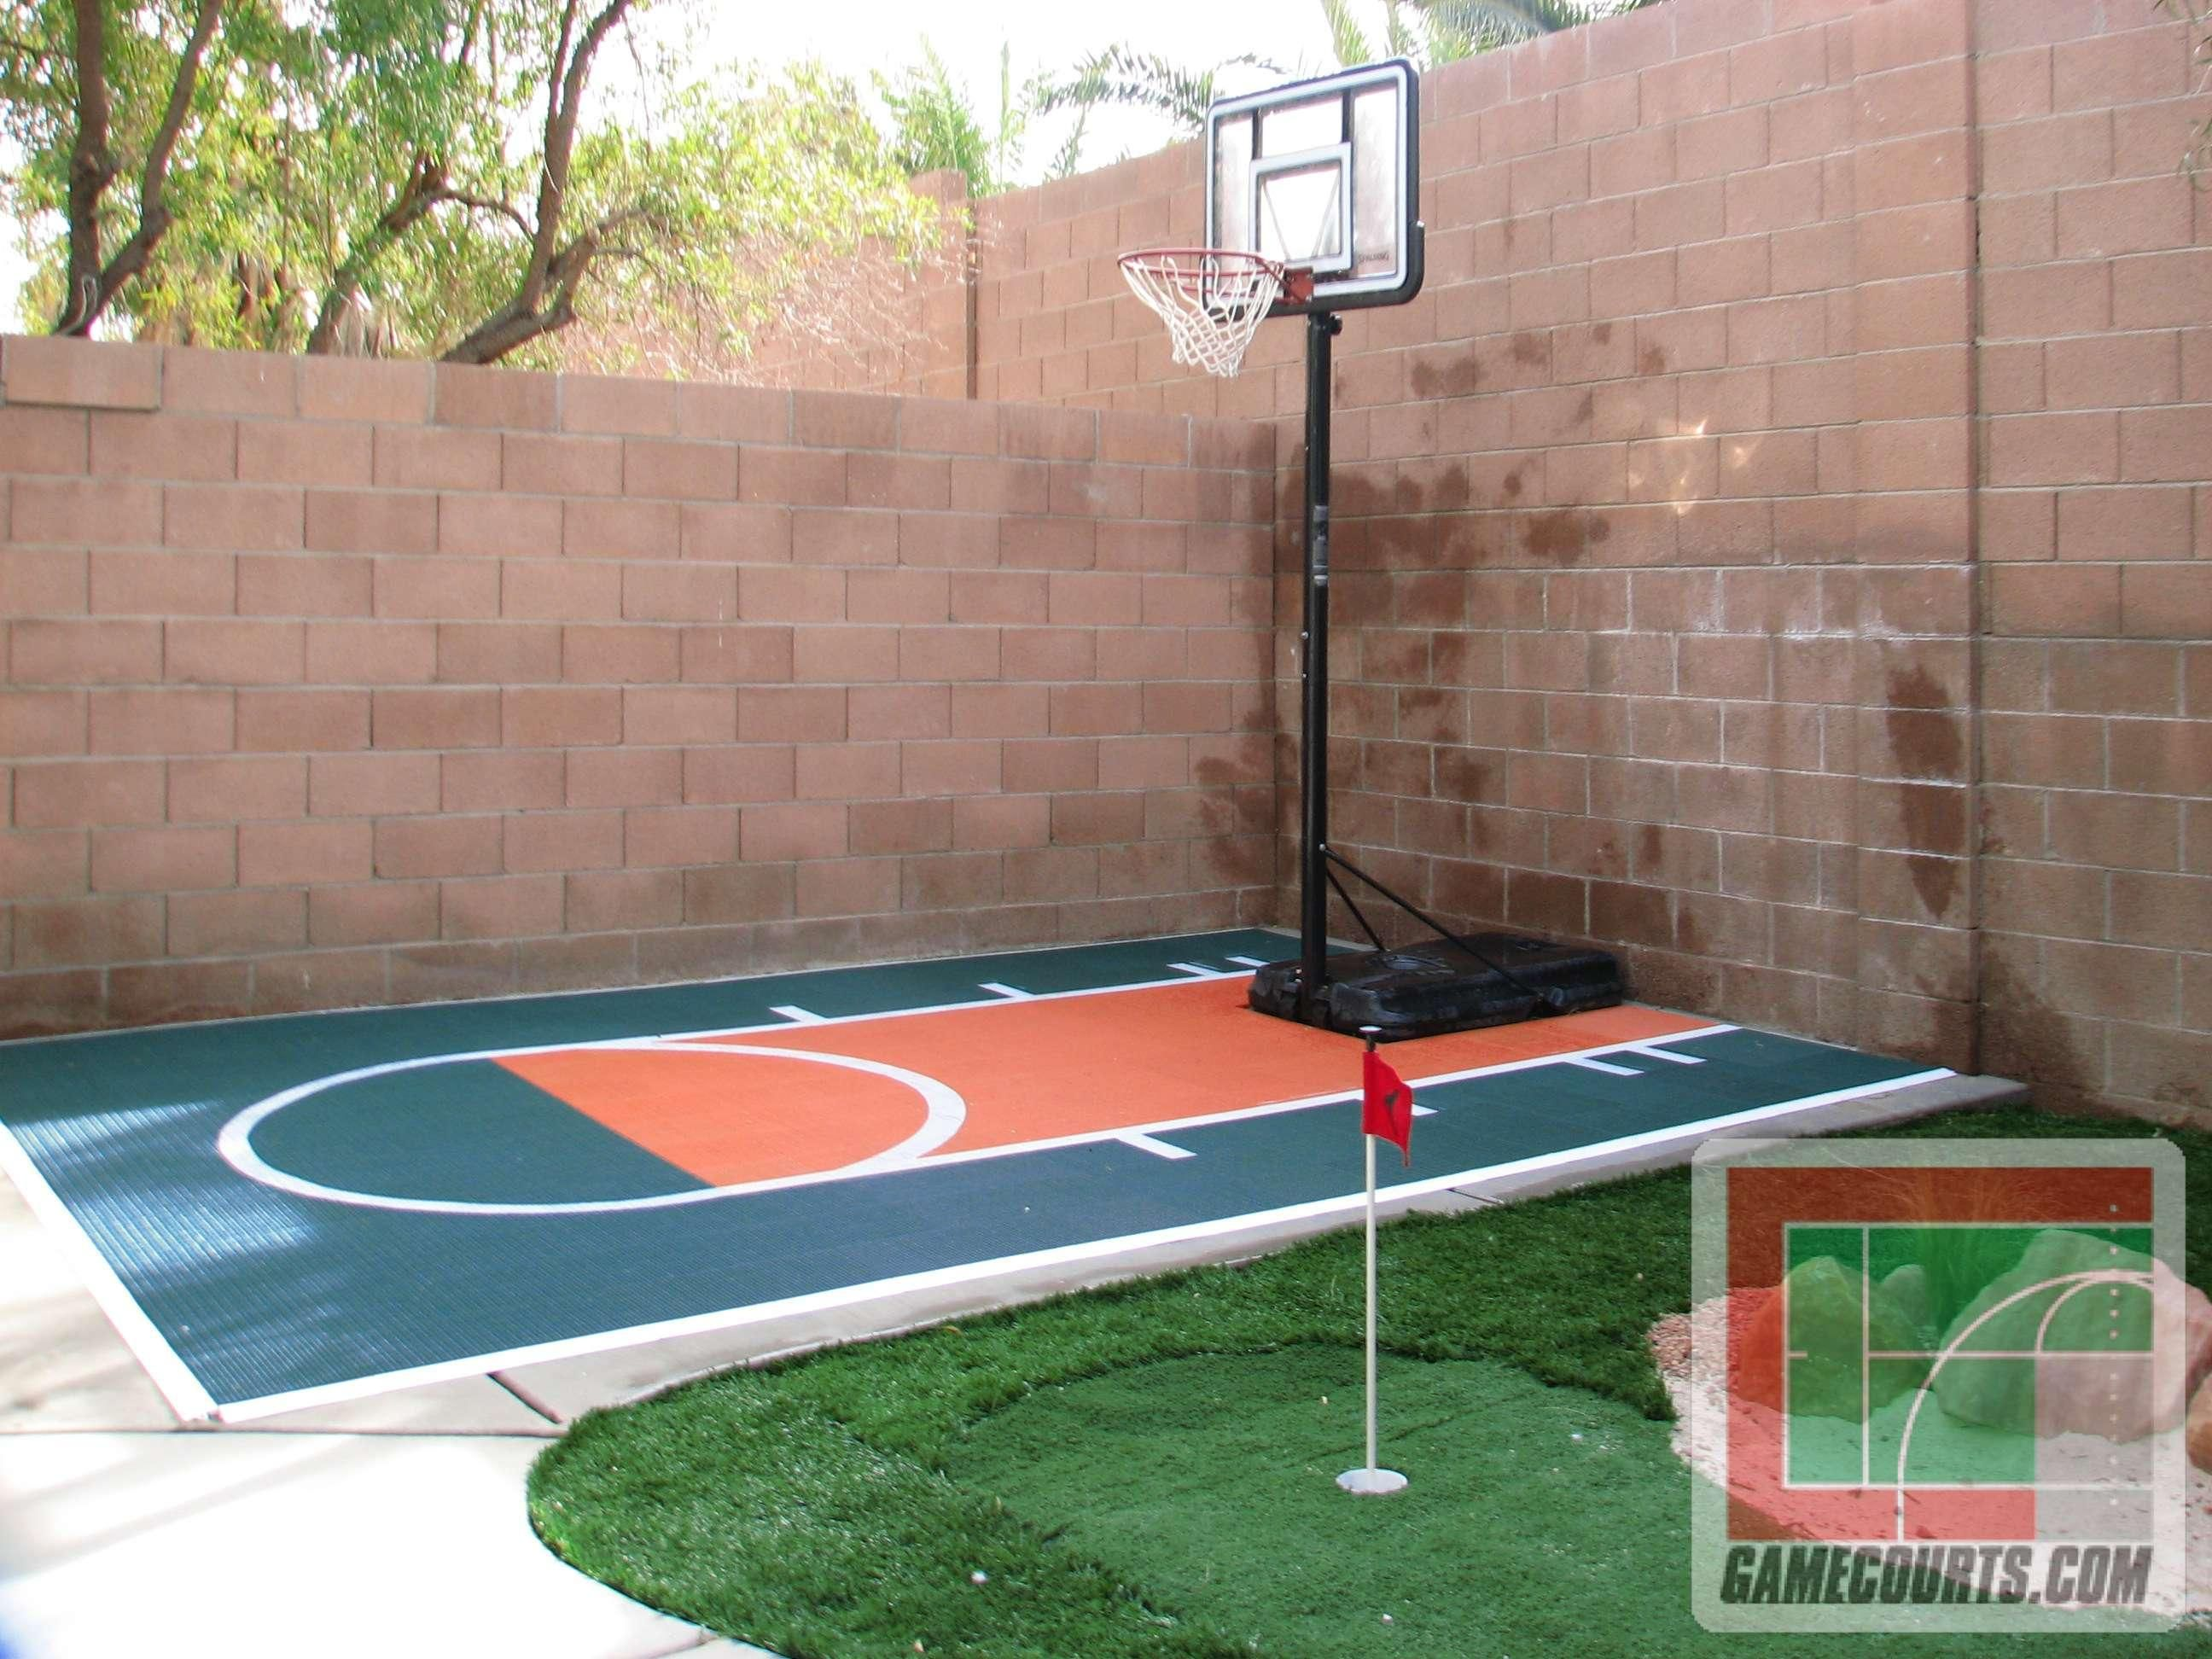 we could probably fit a mini court like this in one of the corners